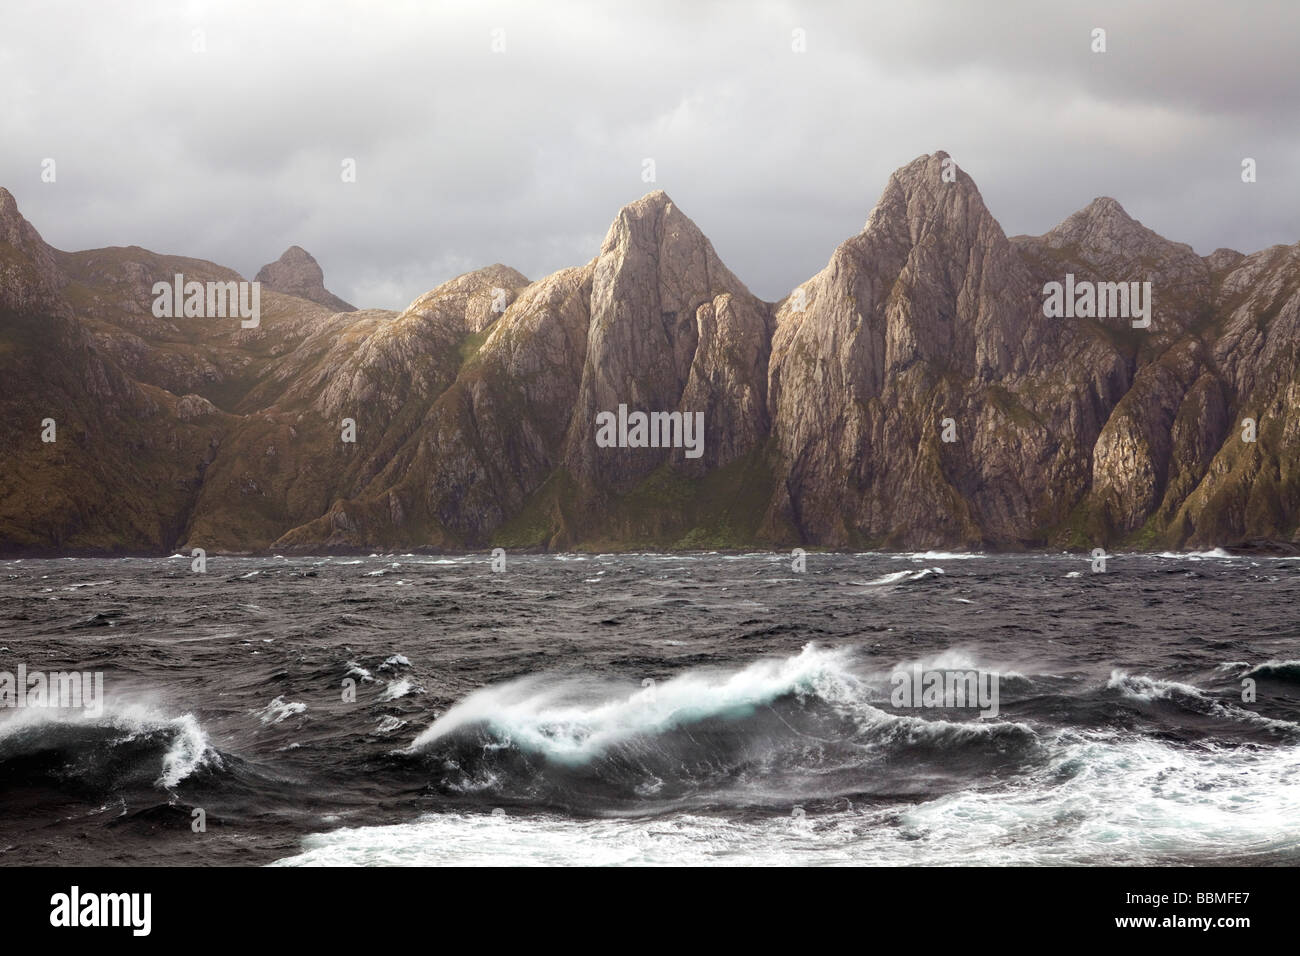 Chile, Tierra del Fuego, Strait of Magellan. Storms and high winds have always made this crucially important seaway - Stock Image